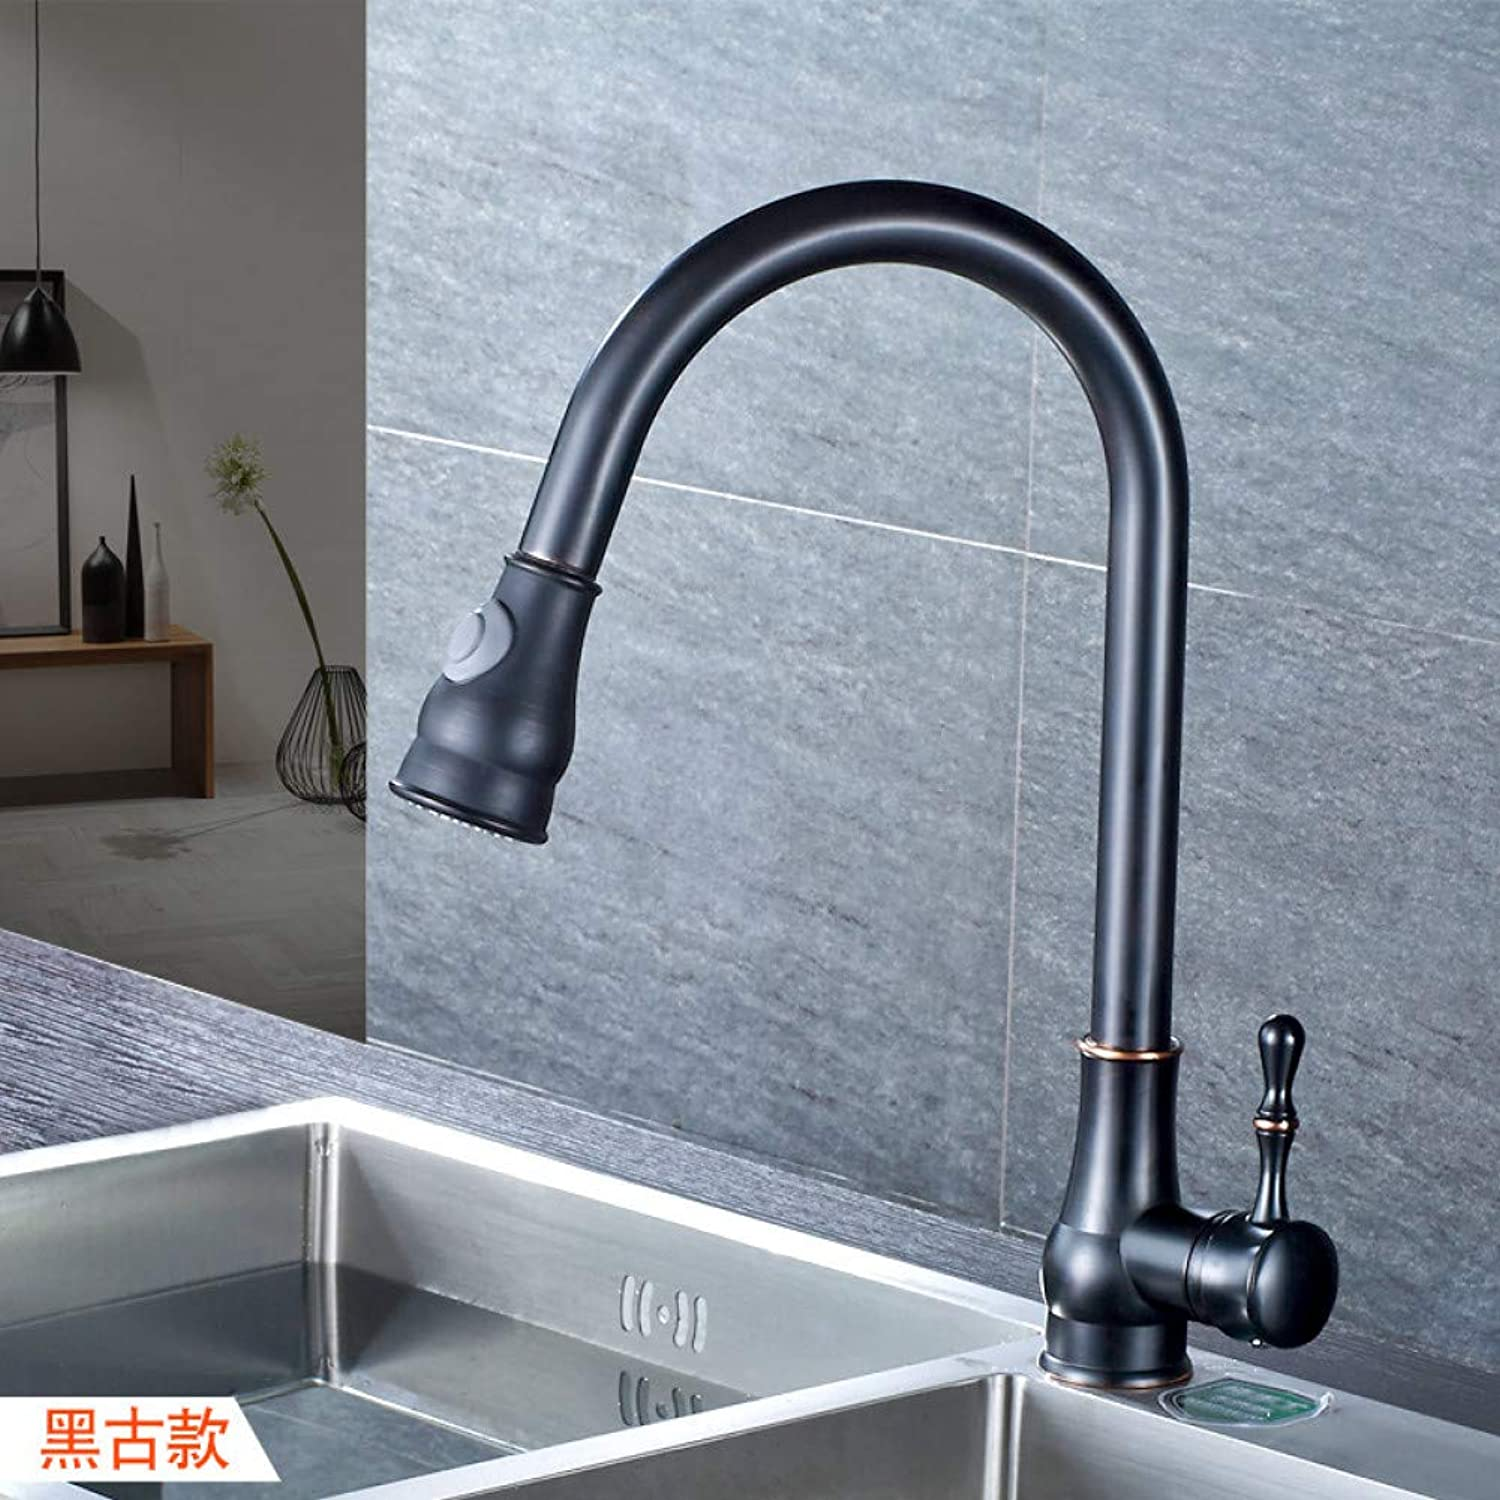 L22LW Faucet Pull-Down Kitchen Faucet-Copper Wash Dishes with A Basin of Two Chrome Black Swivel